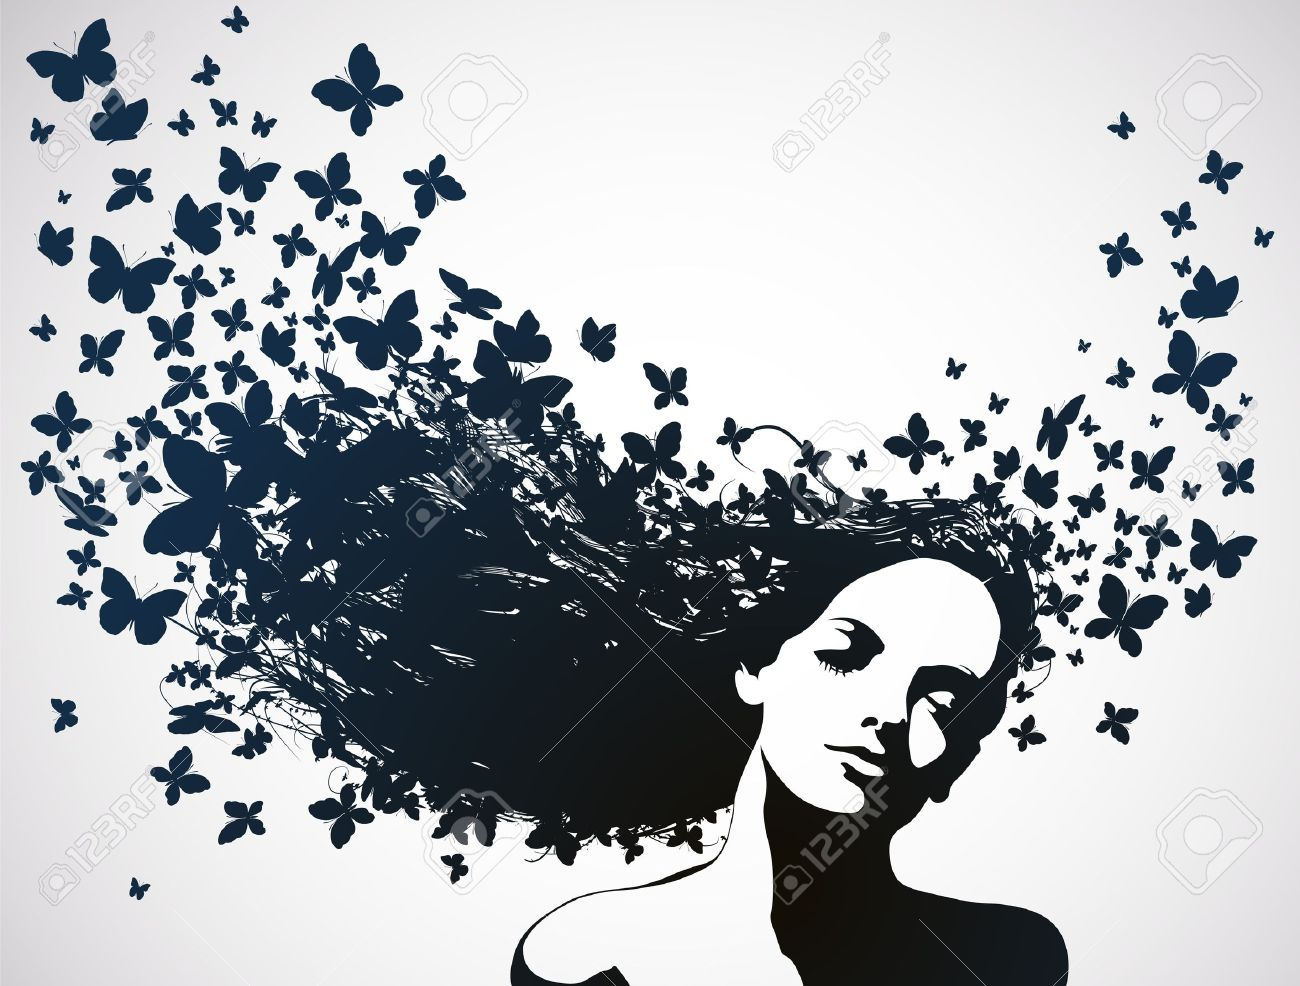 Woman with butterflies flying from hair Stock Vector - 12809906